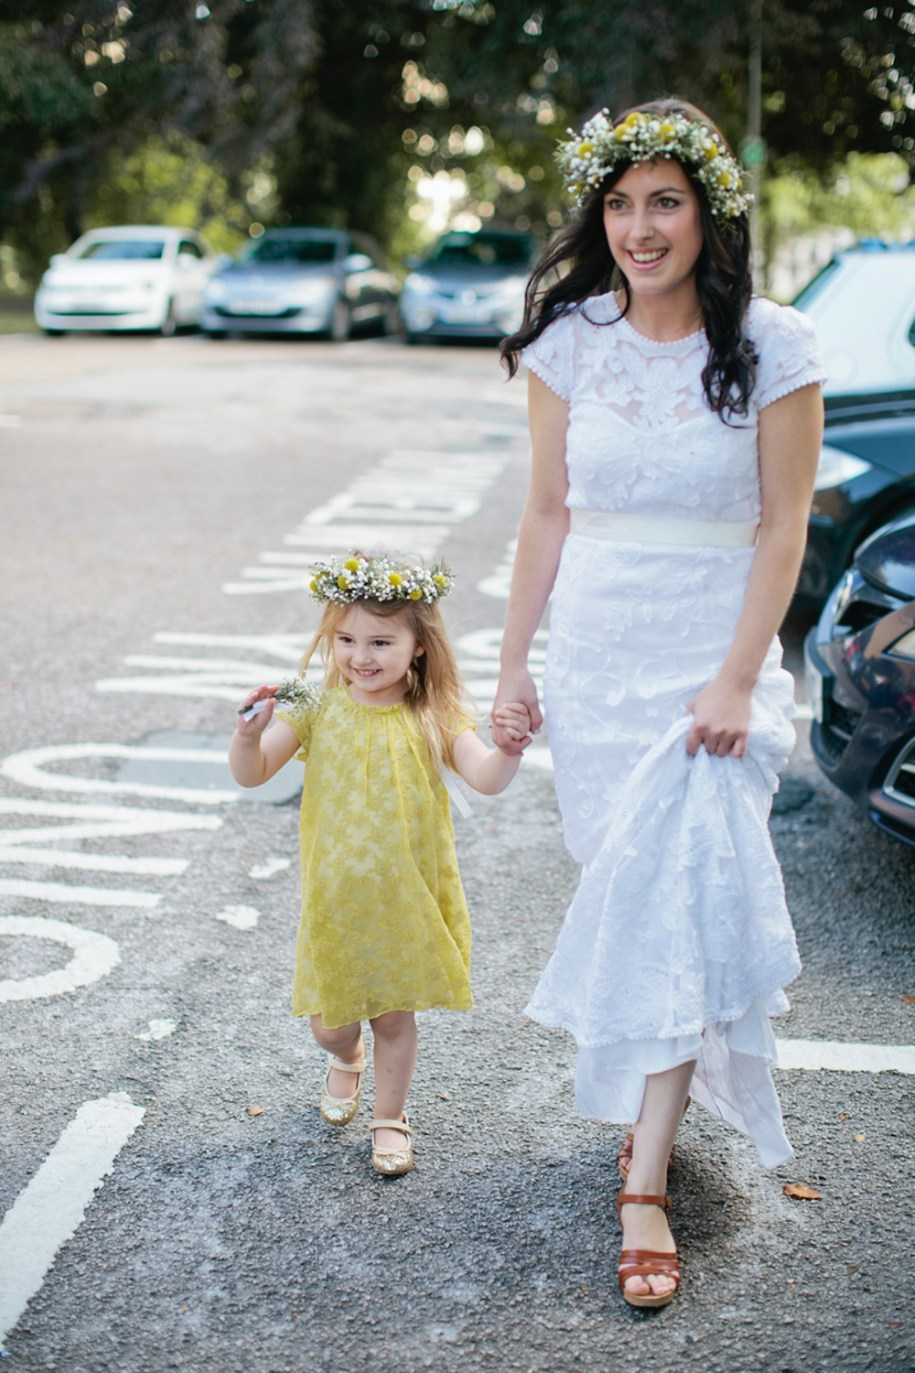 Bride and flower girl walking by Hawarden festival wedding photographer